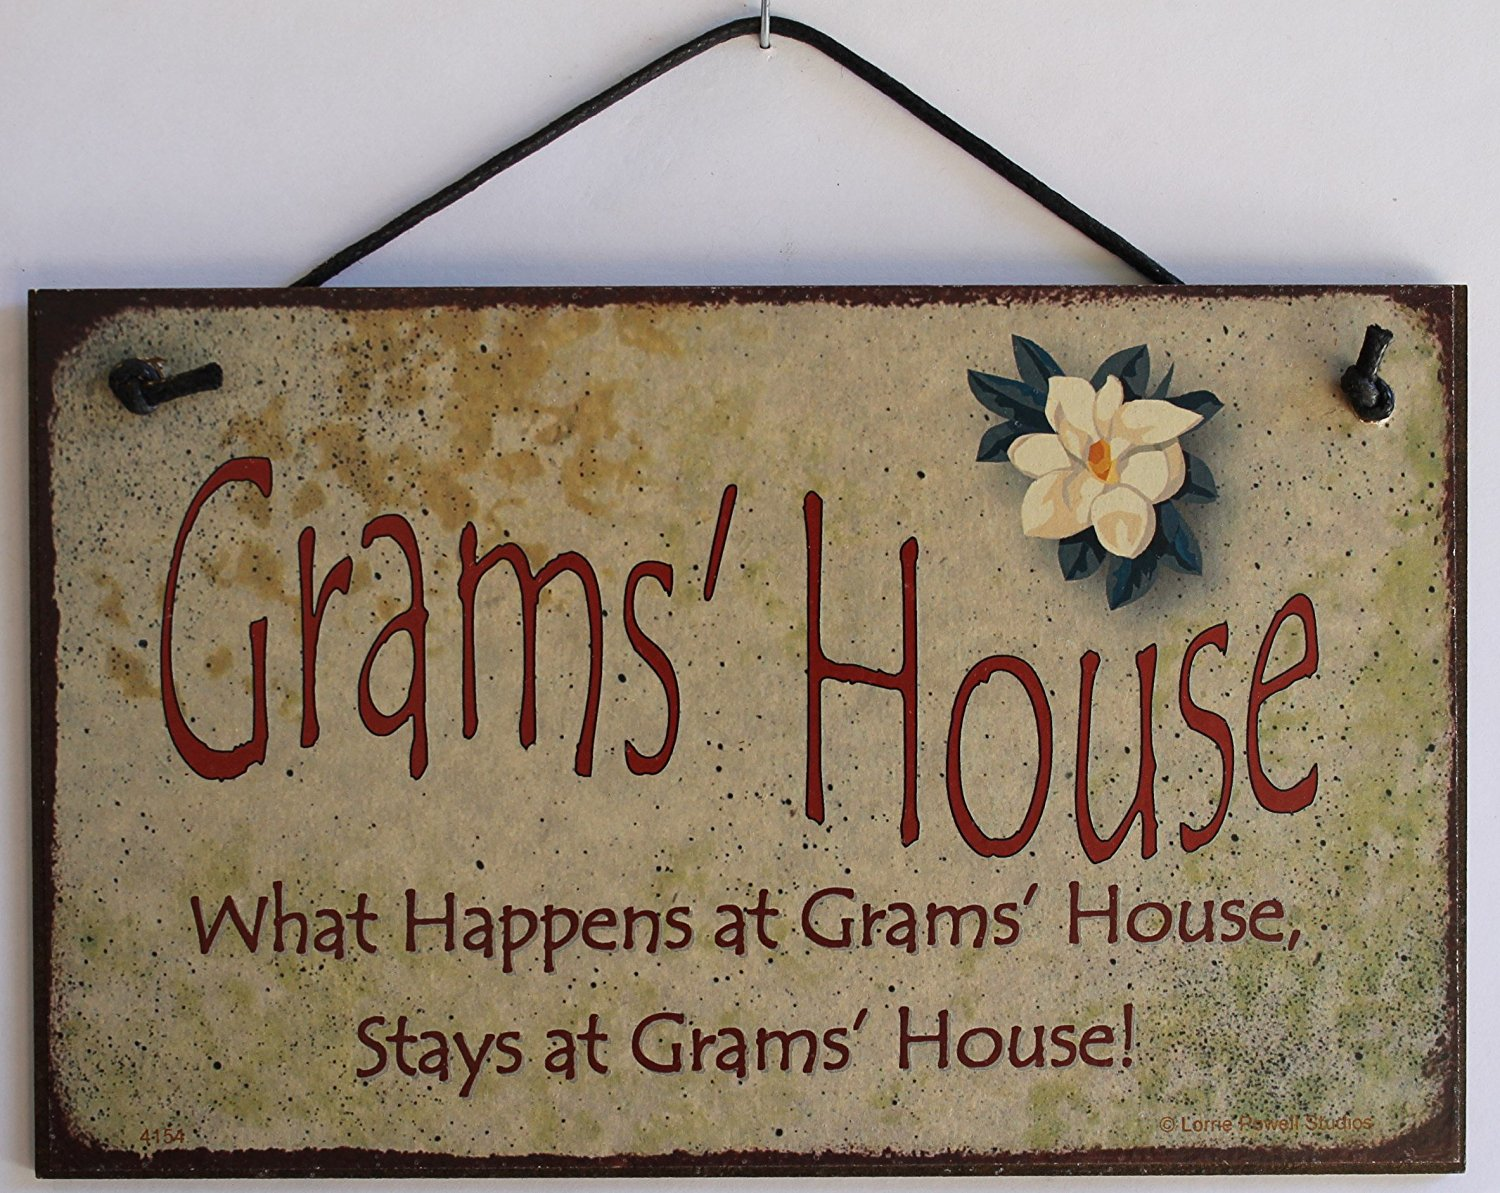 "5x8 Vintage Style Sign with Magnolia Saying, ""Grams' House What Happens at Grams' House, Stays at Grams' House!"" Decorative Fun Universal Household Signs from Egbert's Treasures"